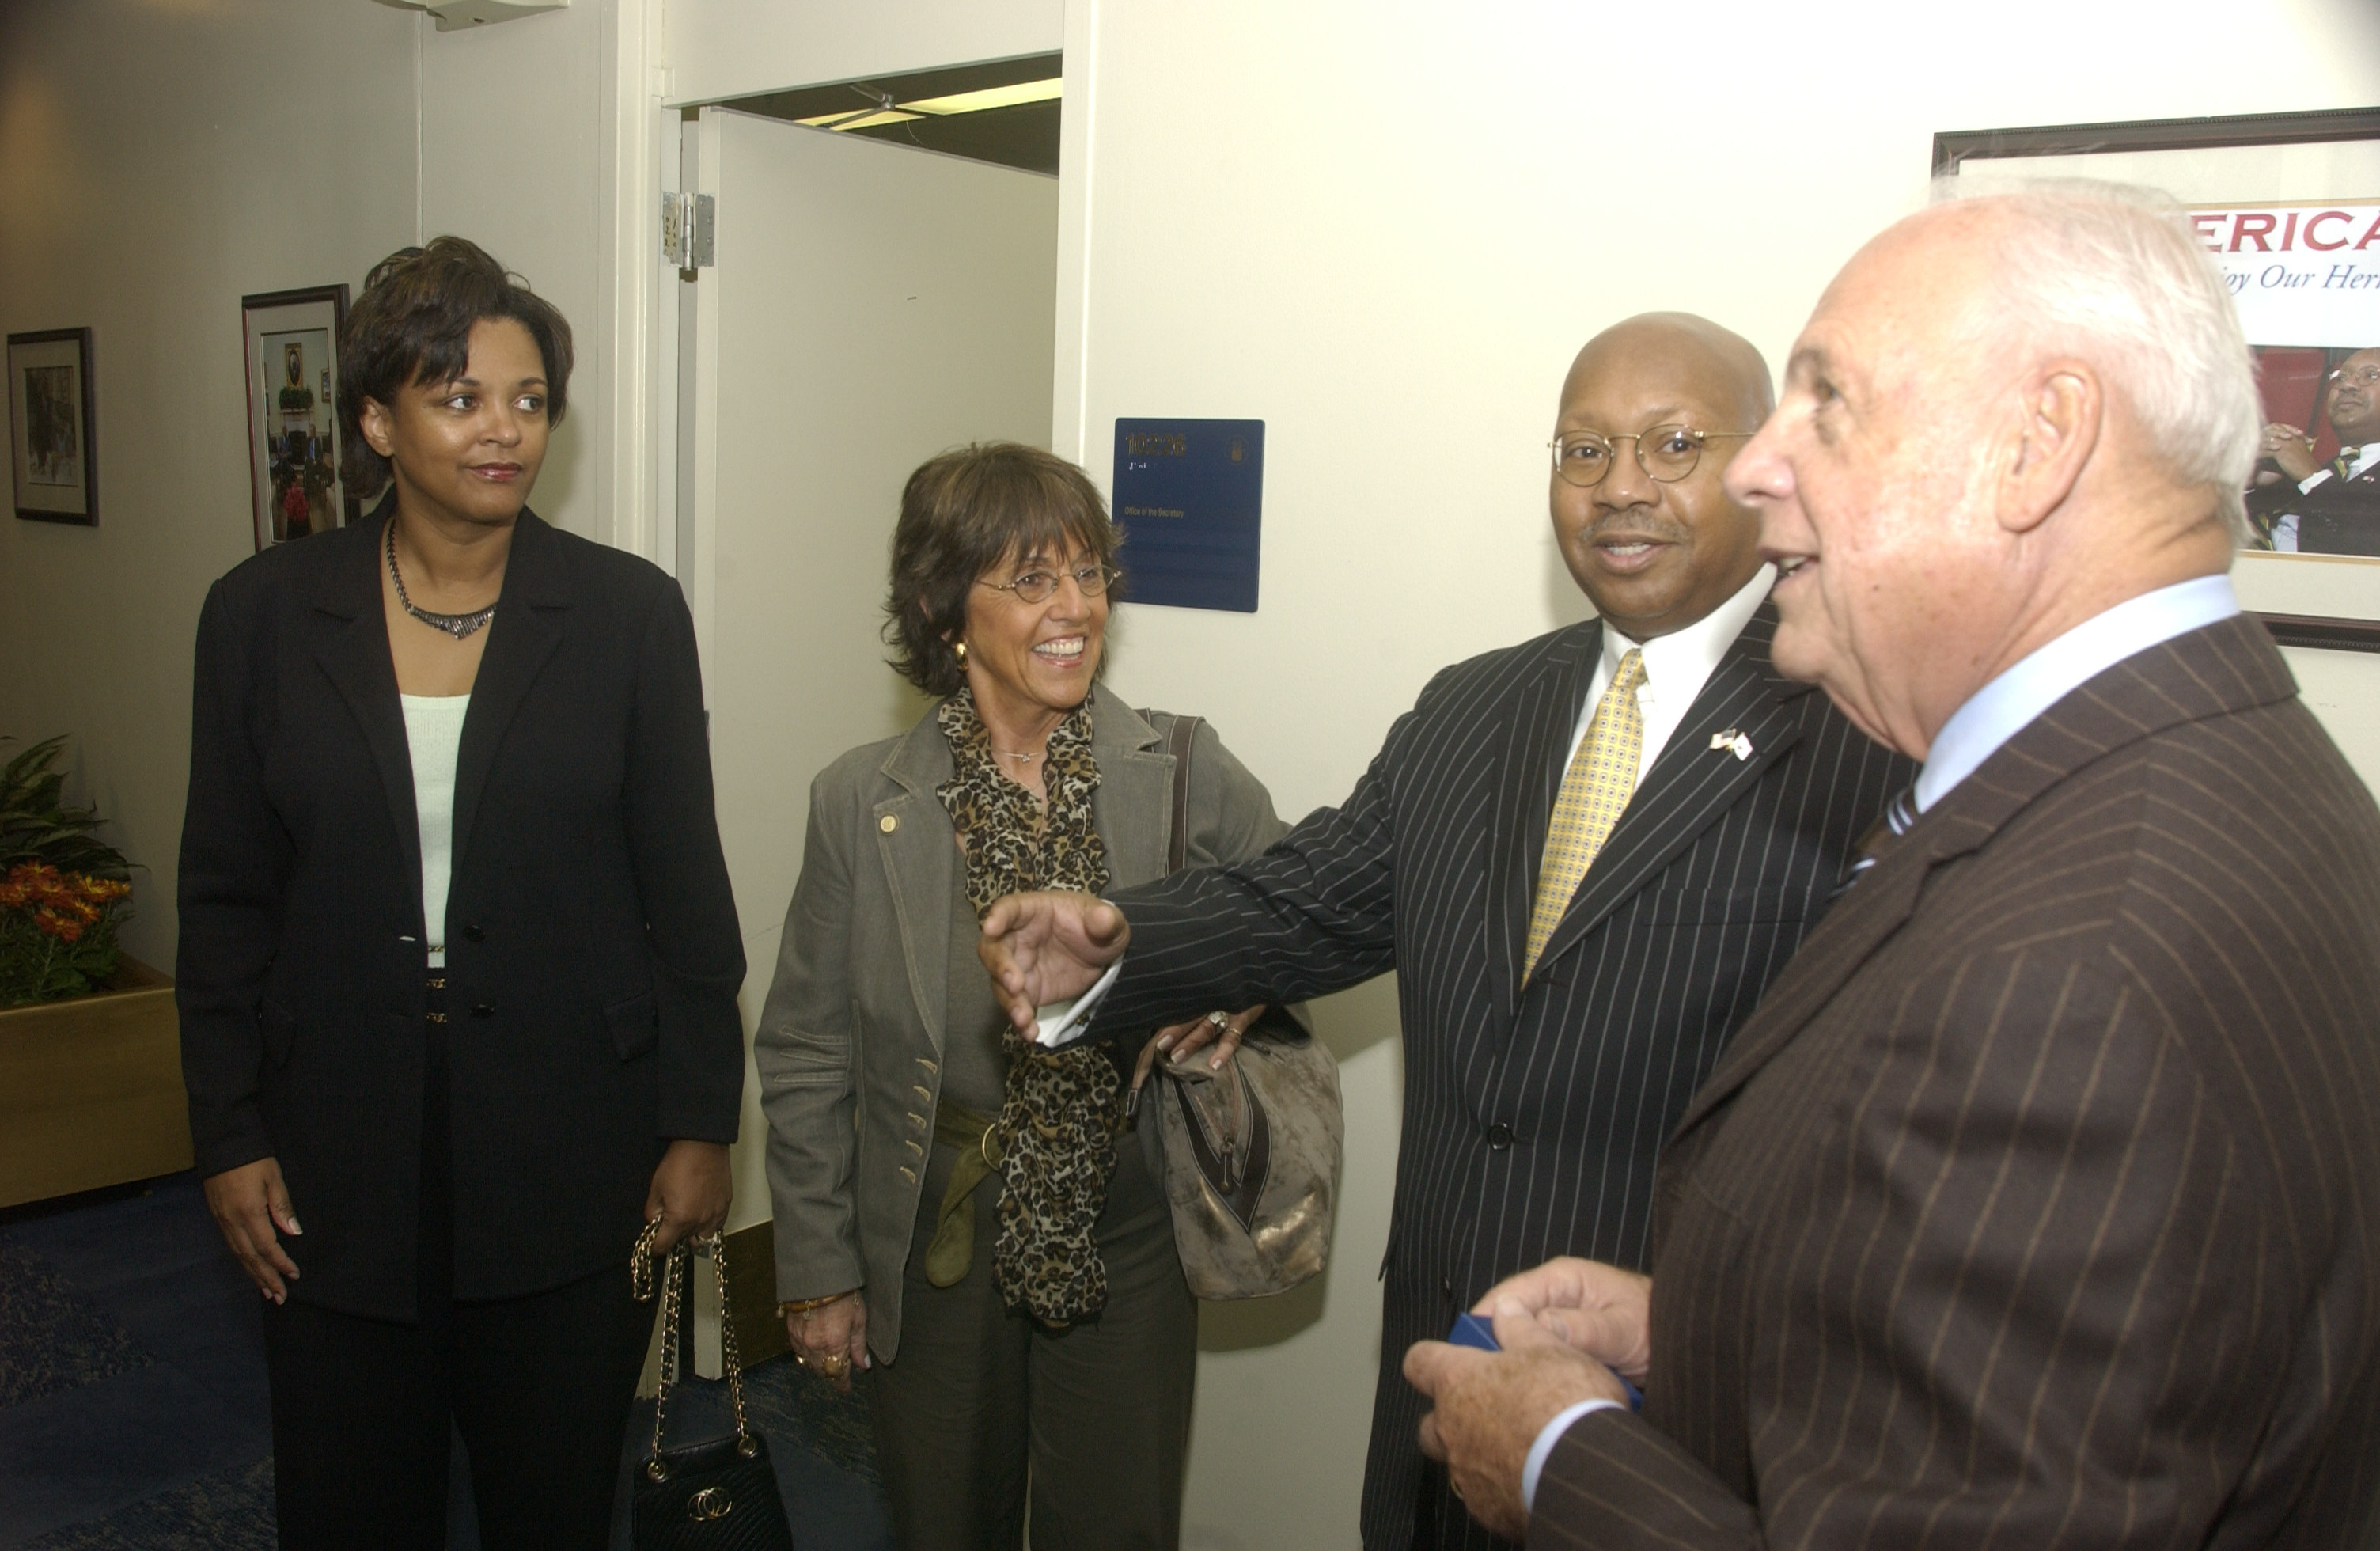 Secretary Alphonso Jackson with Anthony and Mary Anne Sansone - Secretary Alphonso Jackson meeting at HUD Headquarters with Anthony Sansone, [Chairman of the Board of Sansone Group, a St. Louis, Missouri-based commercial real estate firm], and Sansone's wife, Mary Anne